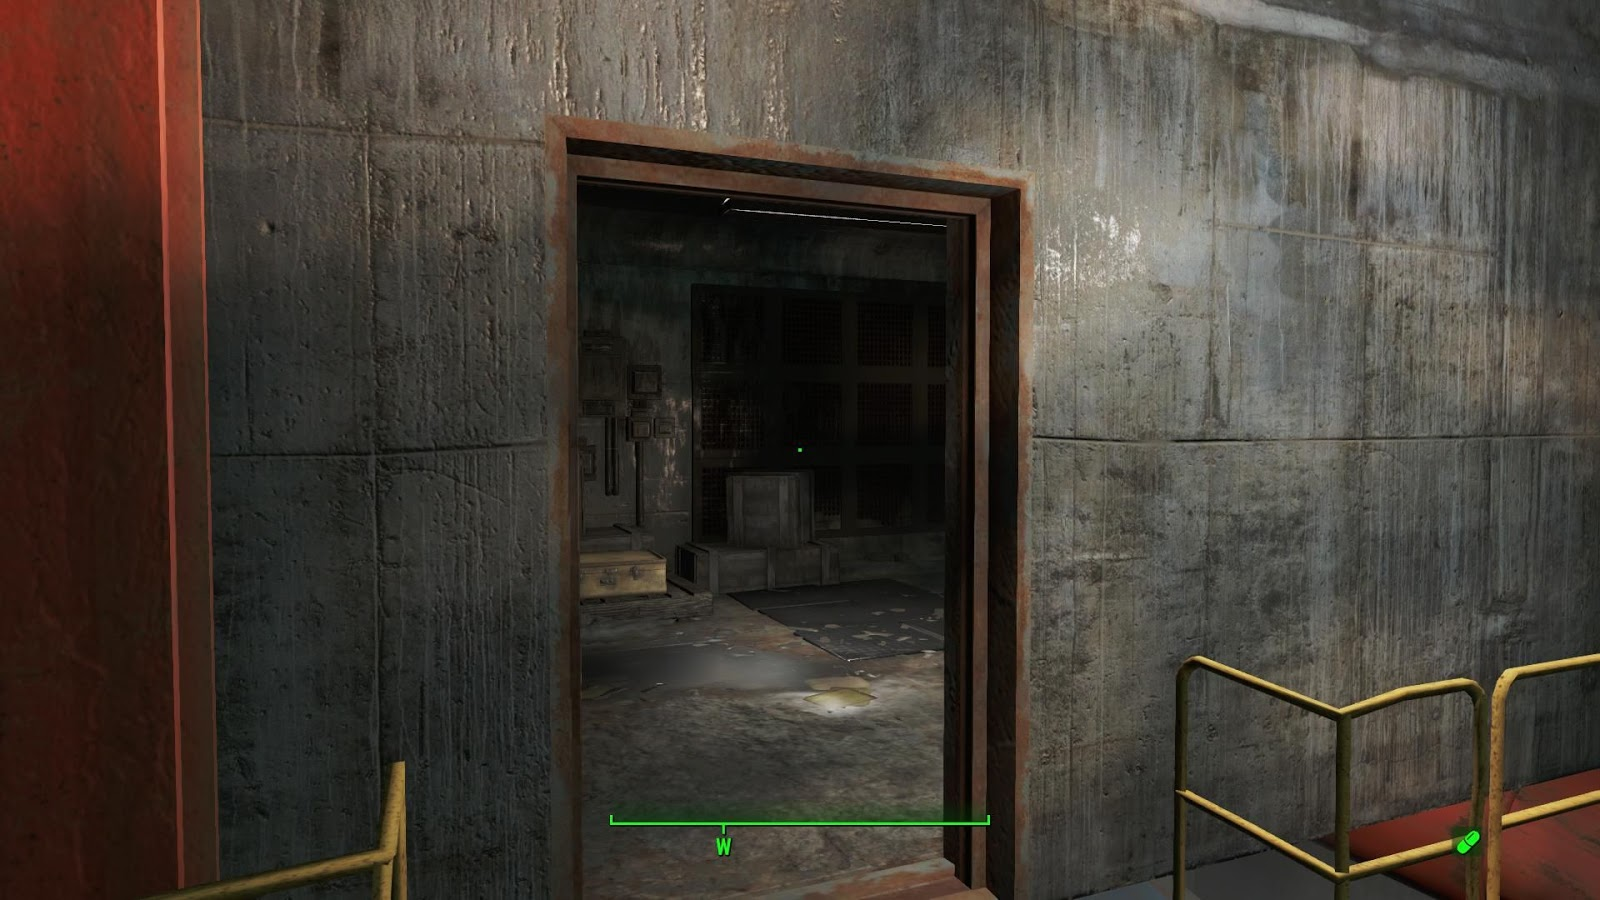 Nuka World Power Plant | Turn on The Power in Nuka-World Power Plant | How to Turn on power in Nuka World Power Plant